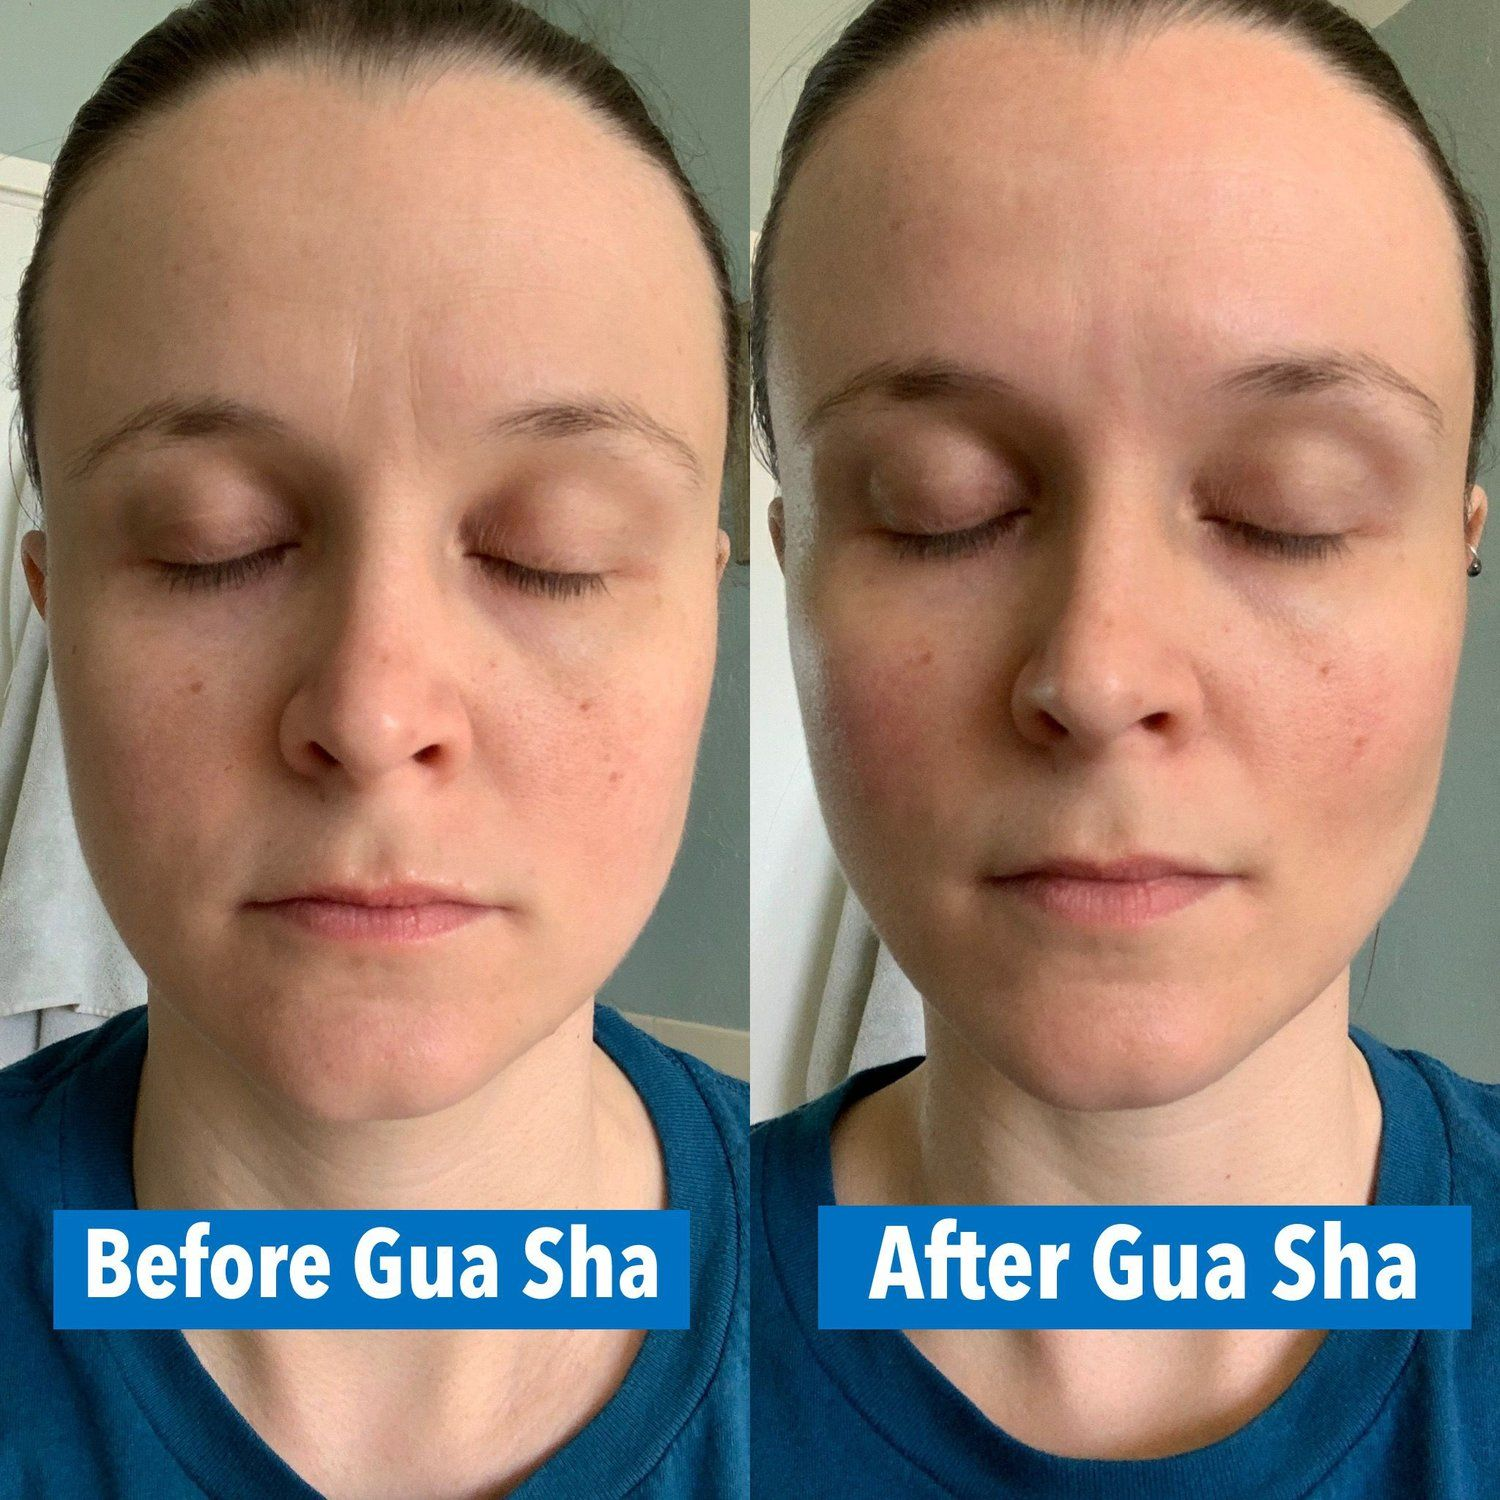 How To Do Facial Gua Sha For Lymphatic Drainage and Anti-Aging Benefits —  The Curious Coconut | Facial puffiness, Gua sha facial, How to do facial